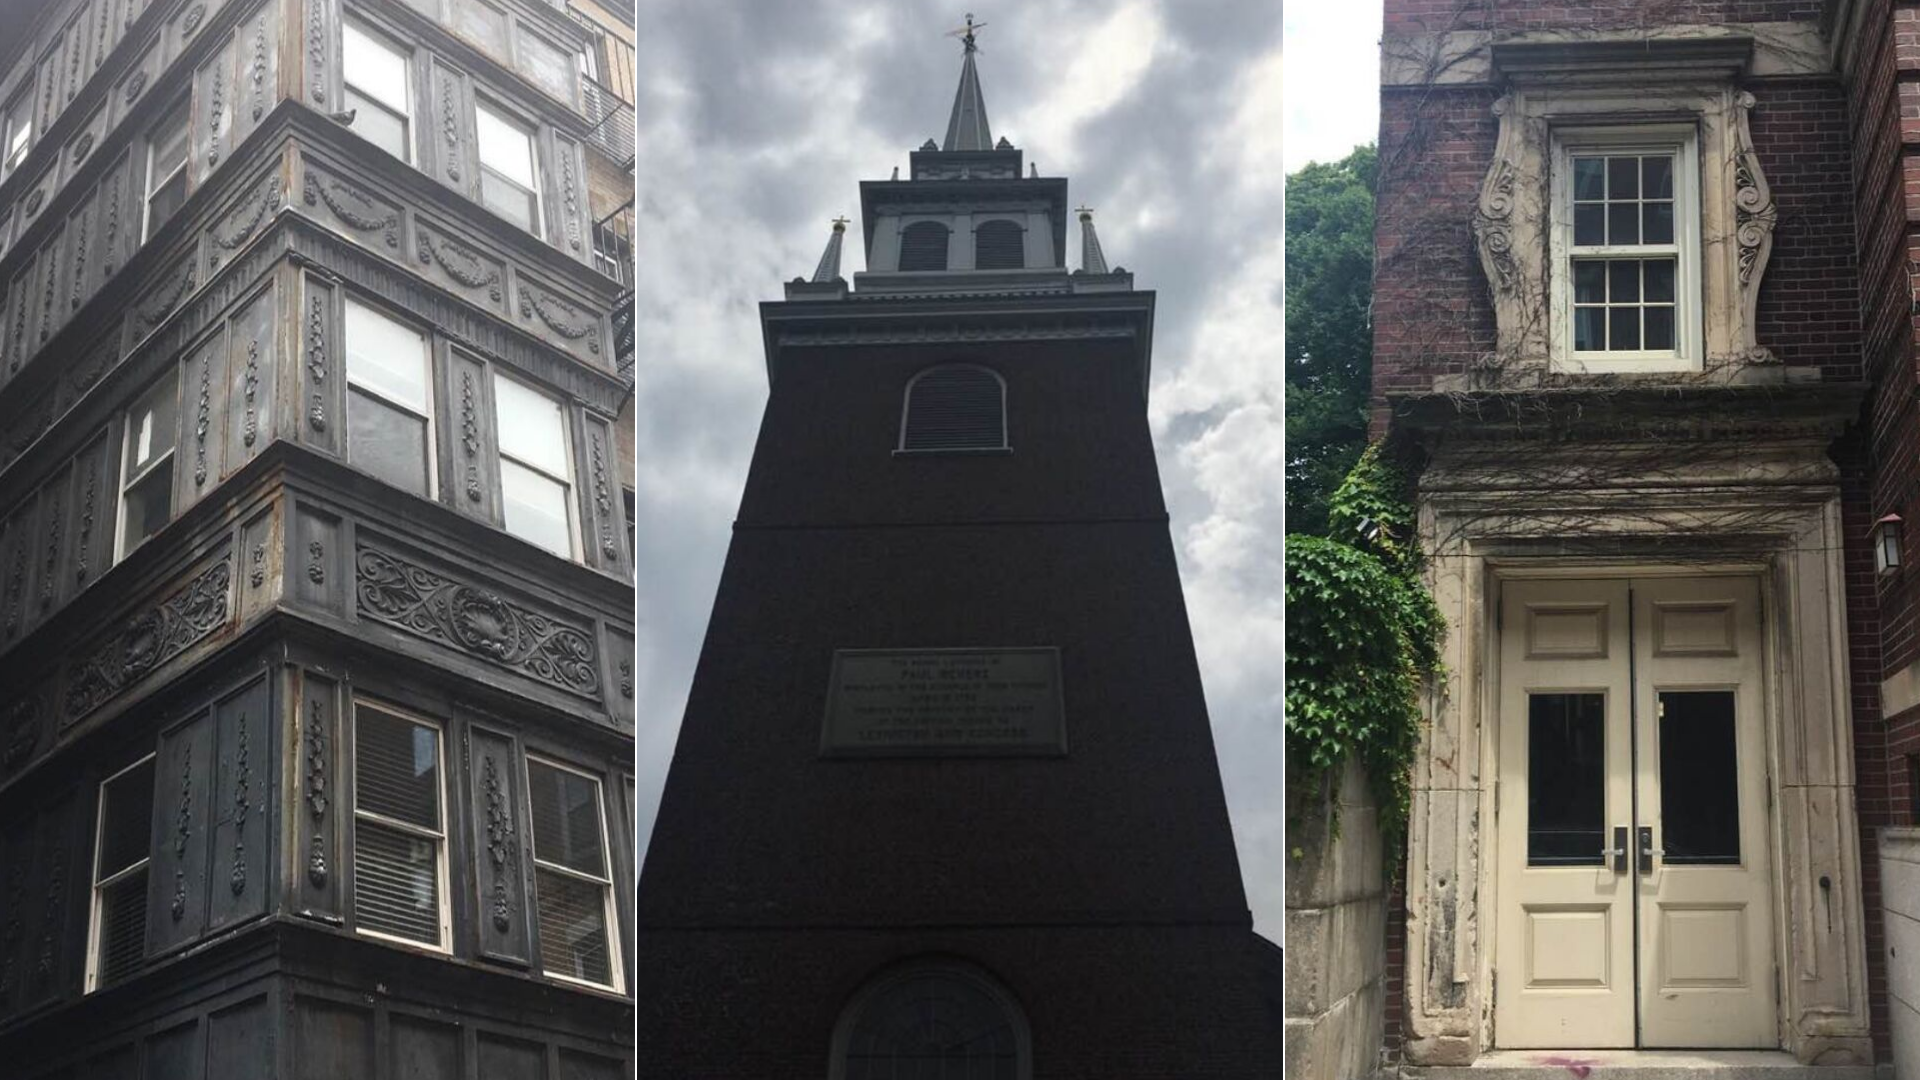 History and architecture (above) mixed with art and fun (below) is what Boston is all about.